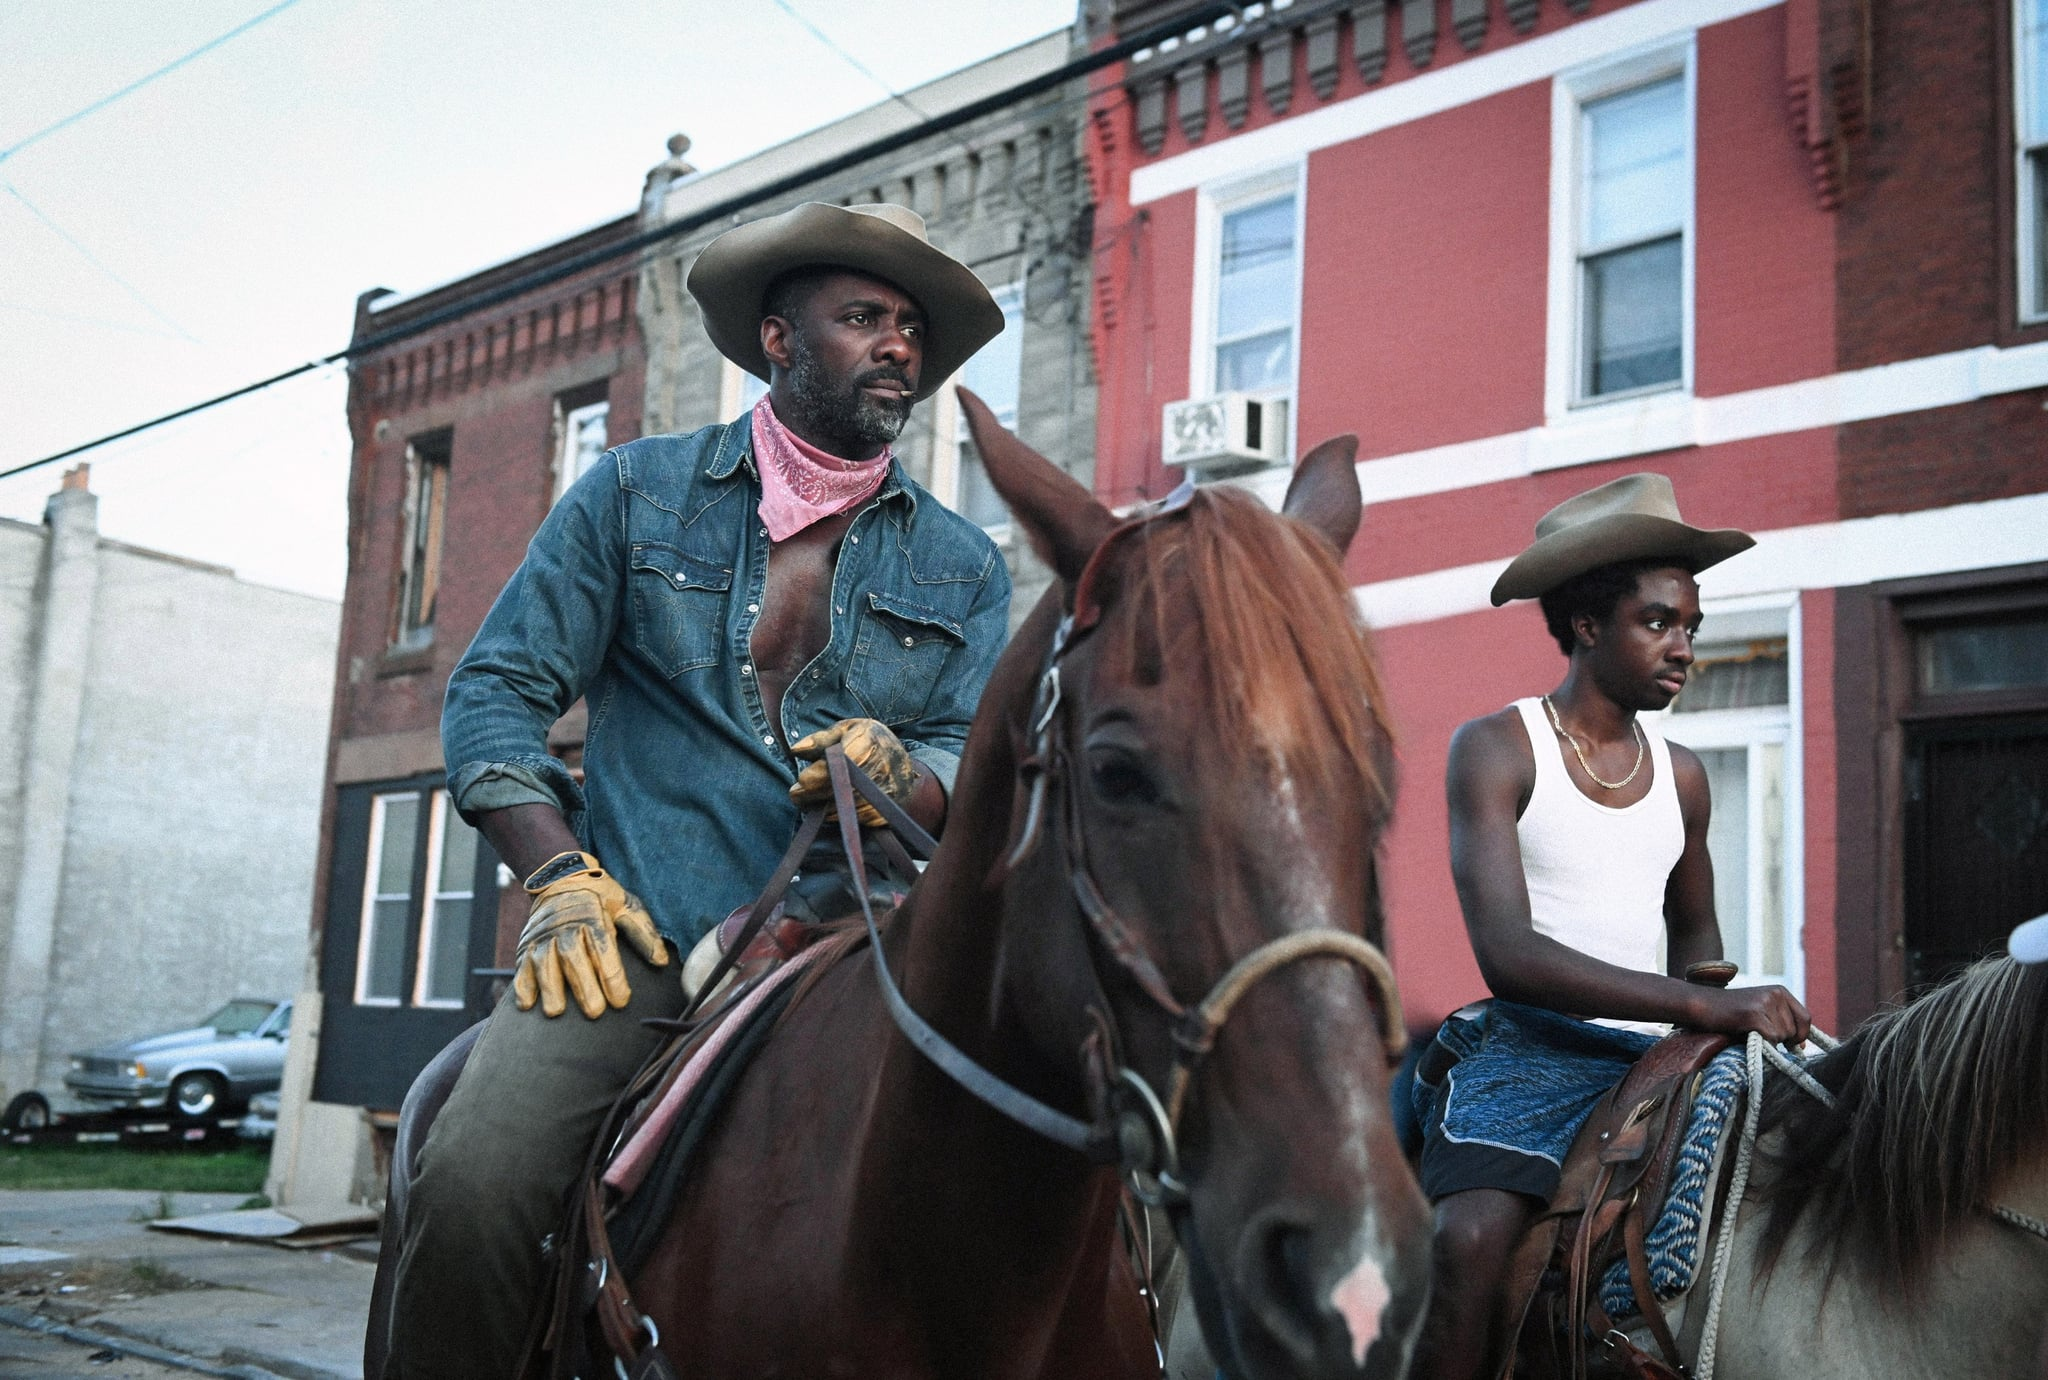 CONCRETE COWBOY, from left: Idris Elba, Caleb McLaughlin, 2020.  ph: Aaron Ricketts / Netflix / Courtesy Everett Collection